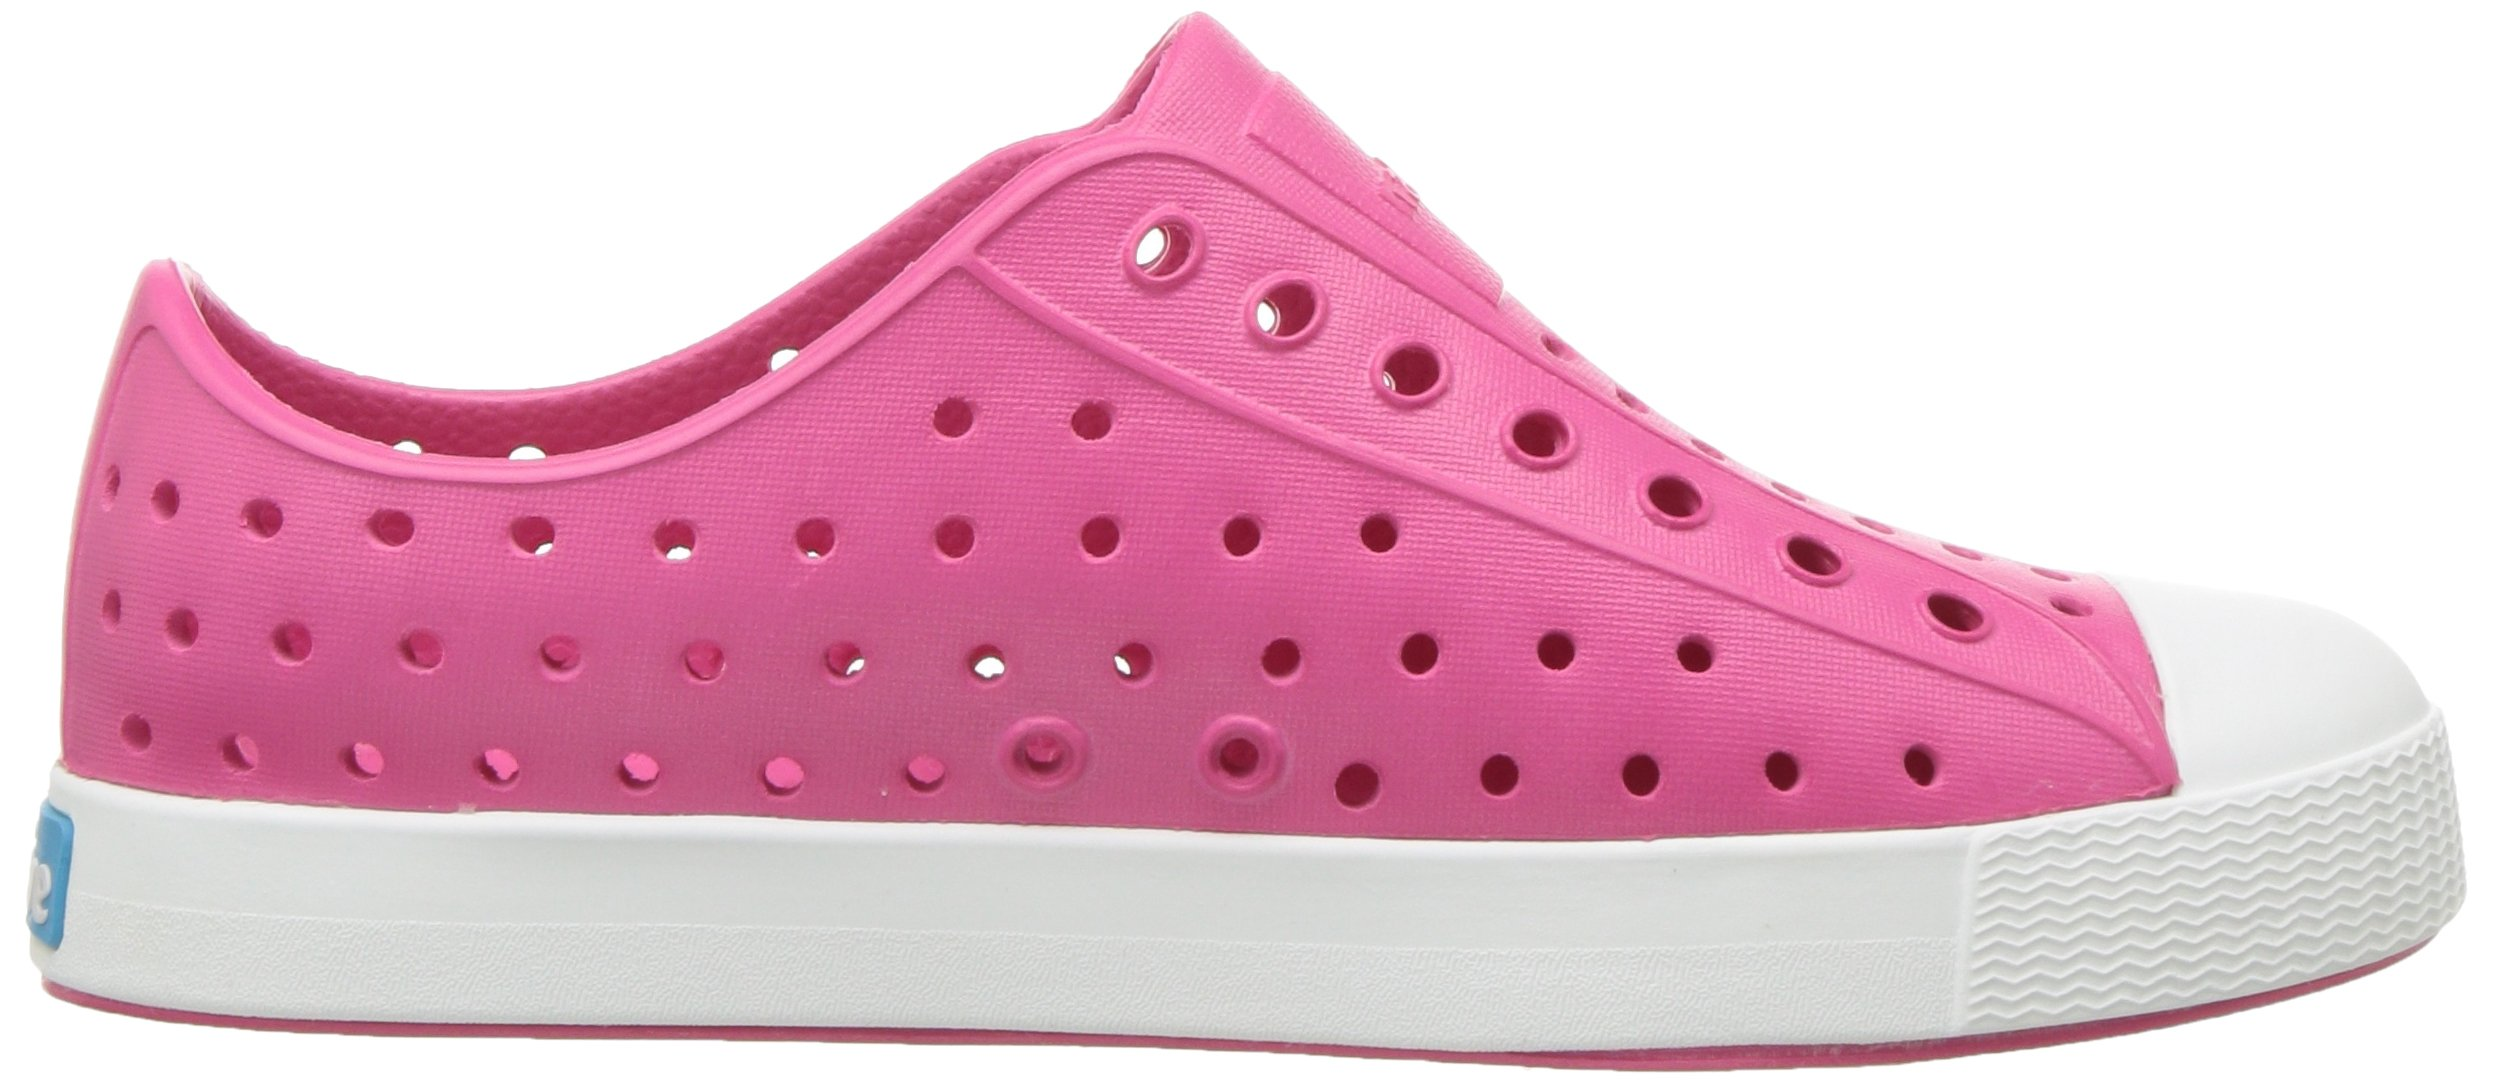 Native Kids Girls Jefferson Junior Water Proof Shoes, Hollywood Pink/Shell White, 6 Medium US Big Kid by Native Shoes (Image #7)